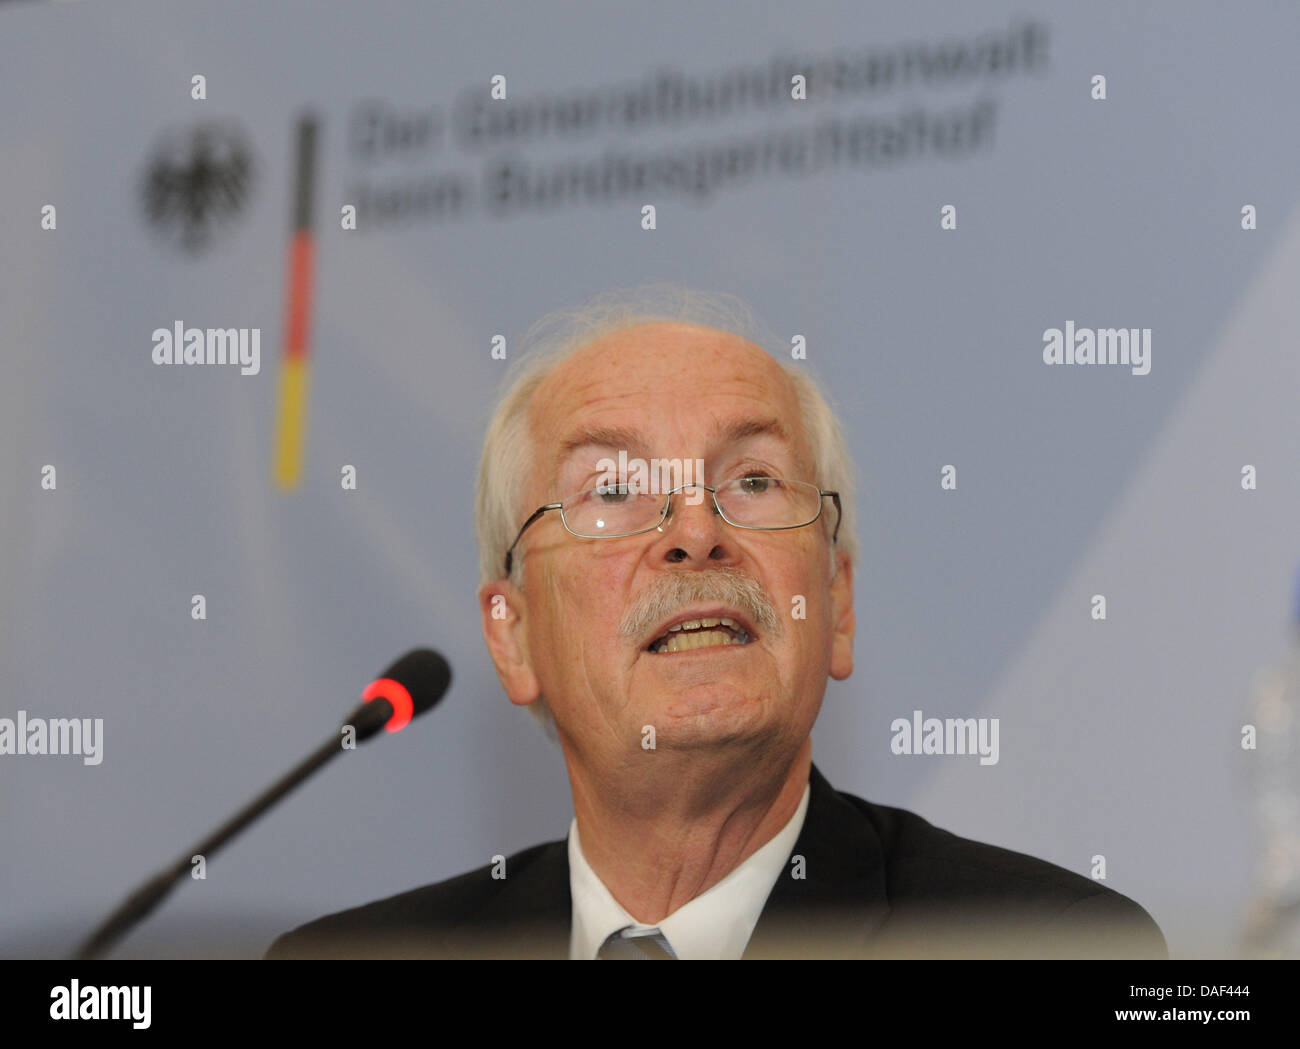 German Attorney General Harald Range speaks during a press conference on the investigations into the far-right terrorist - Stock Image